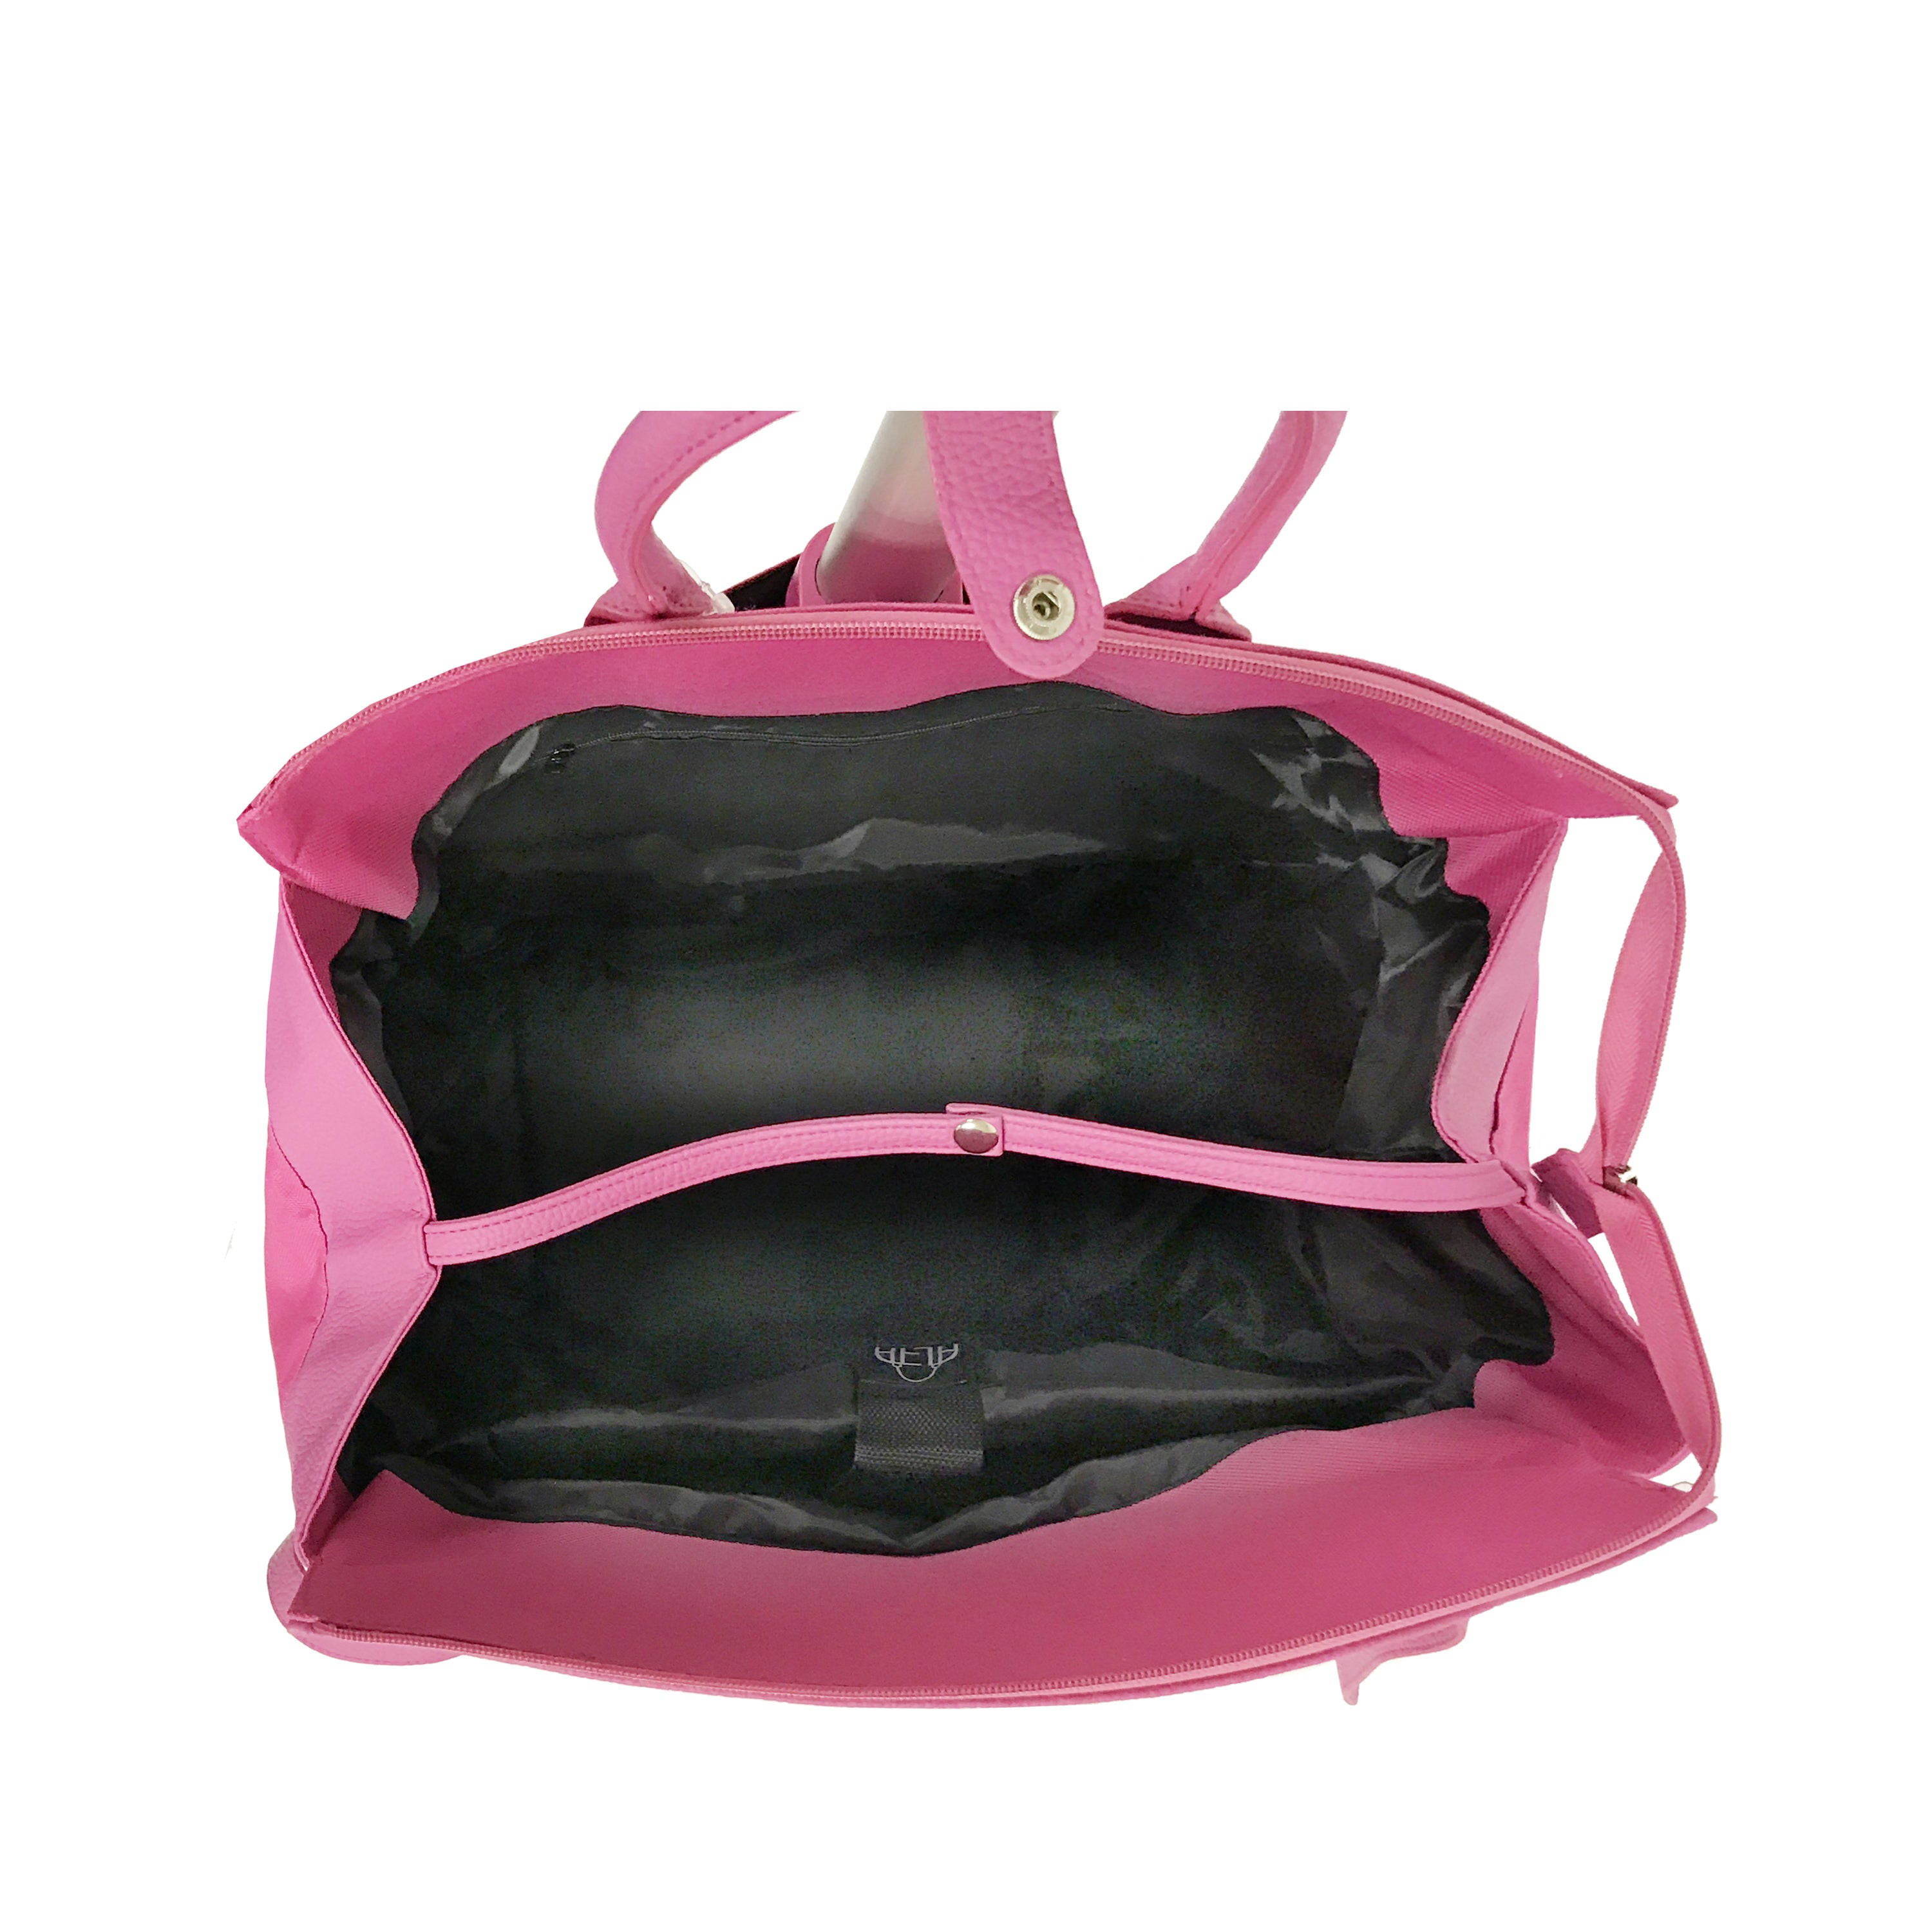 7f2fd1f3034 Shop Rollies Puppy Princess Pink 14-inch Rolling Laptop Travel Tote - On  Sale - Free Shipping Today - Overstock.com - 14629867